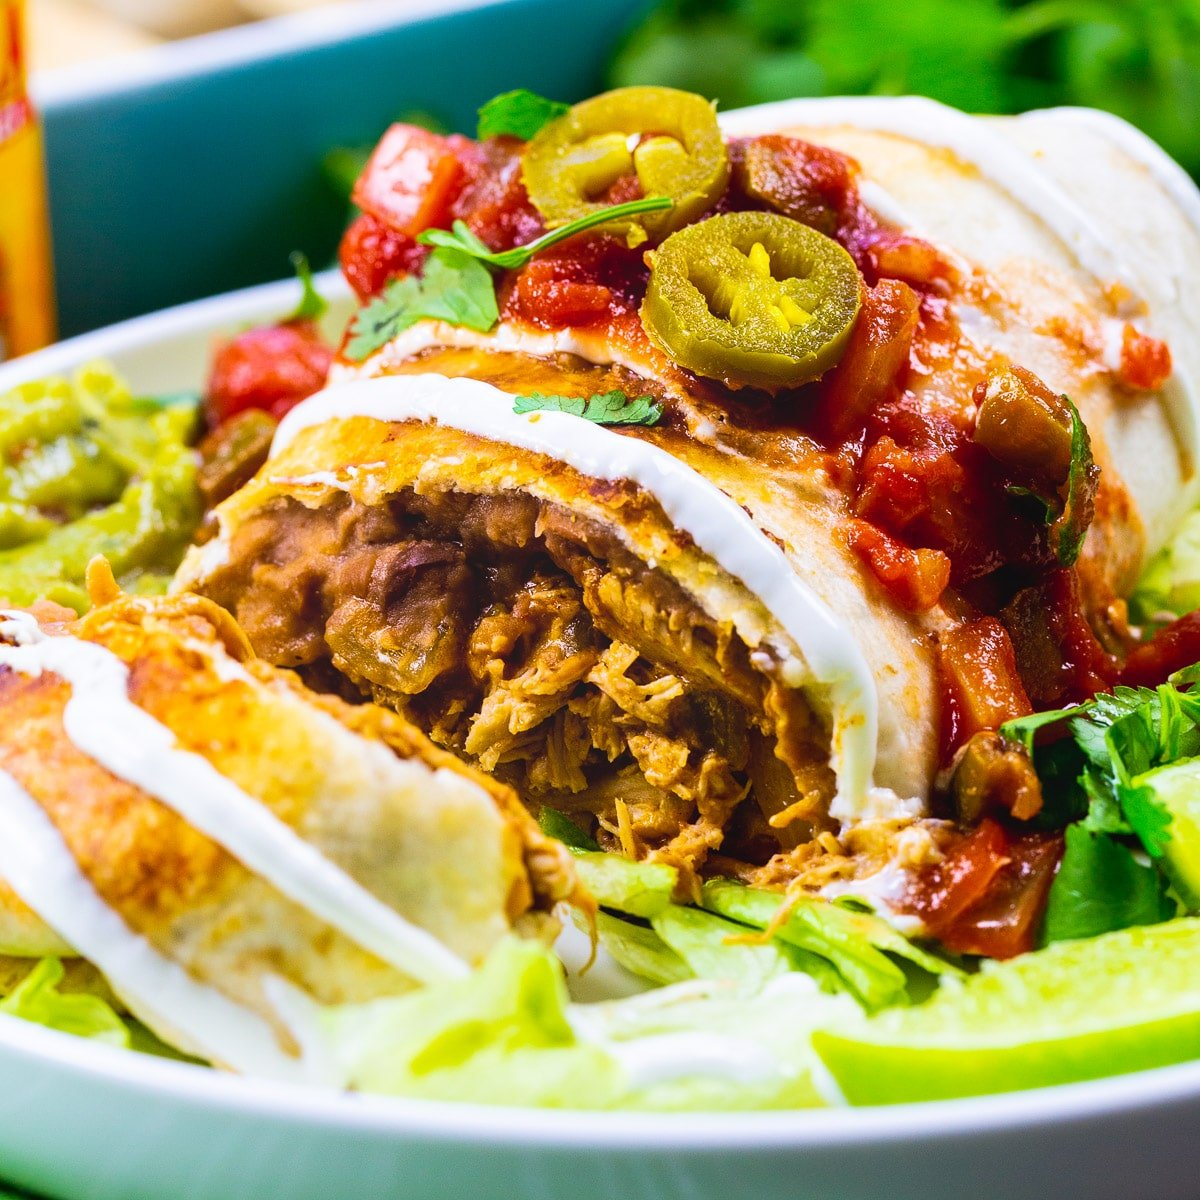 Baked Chicken Chimichanga cut open to show inside.